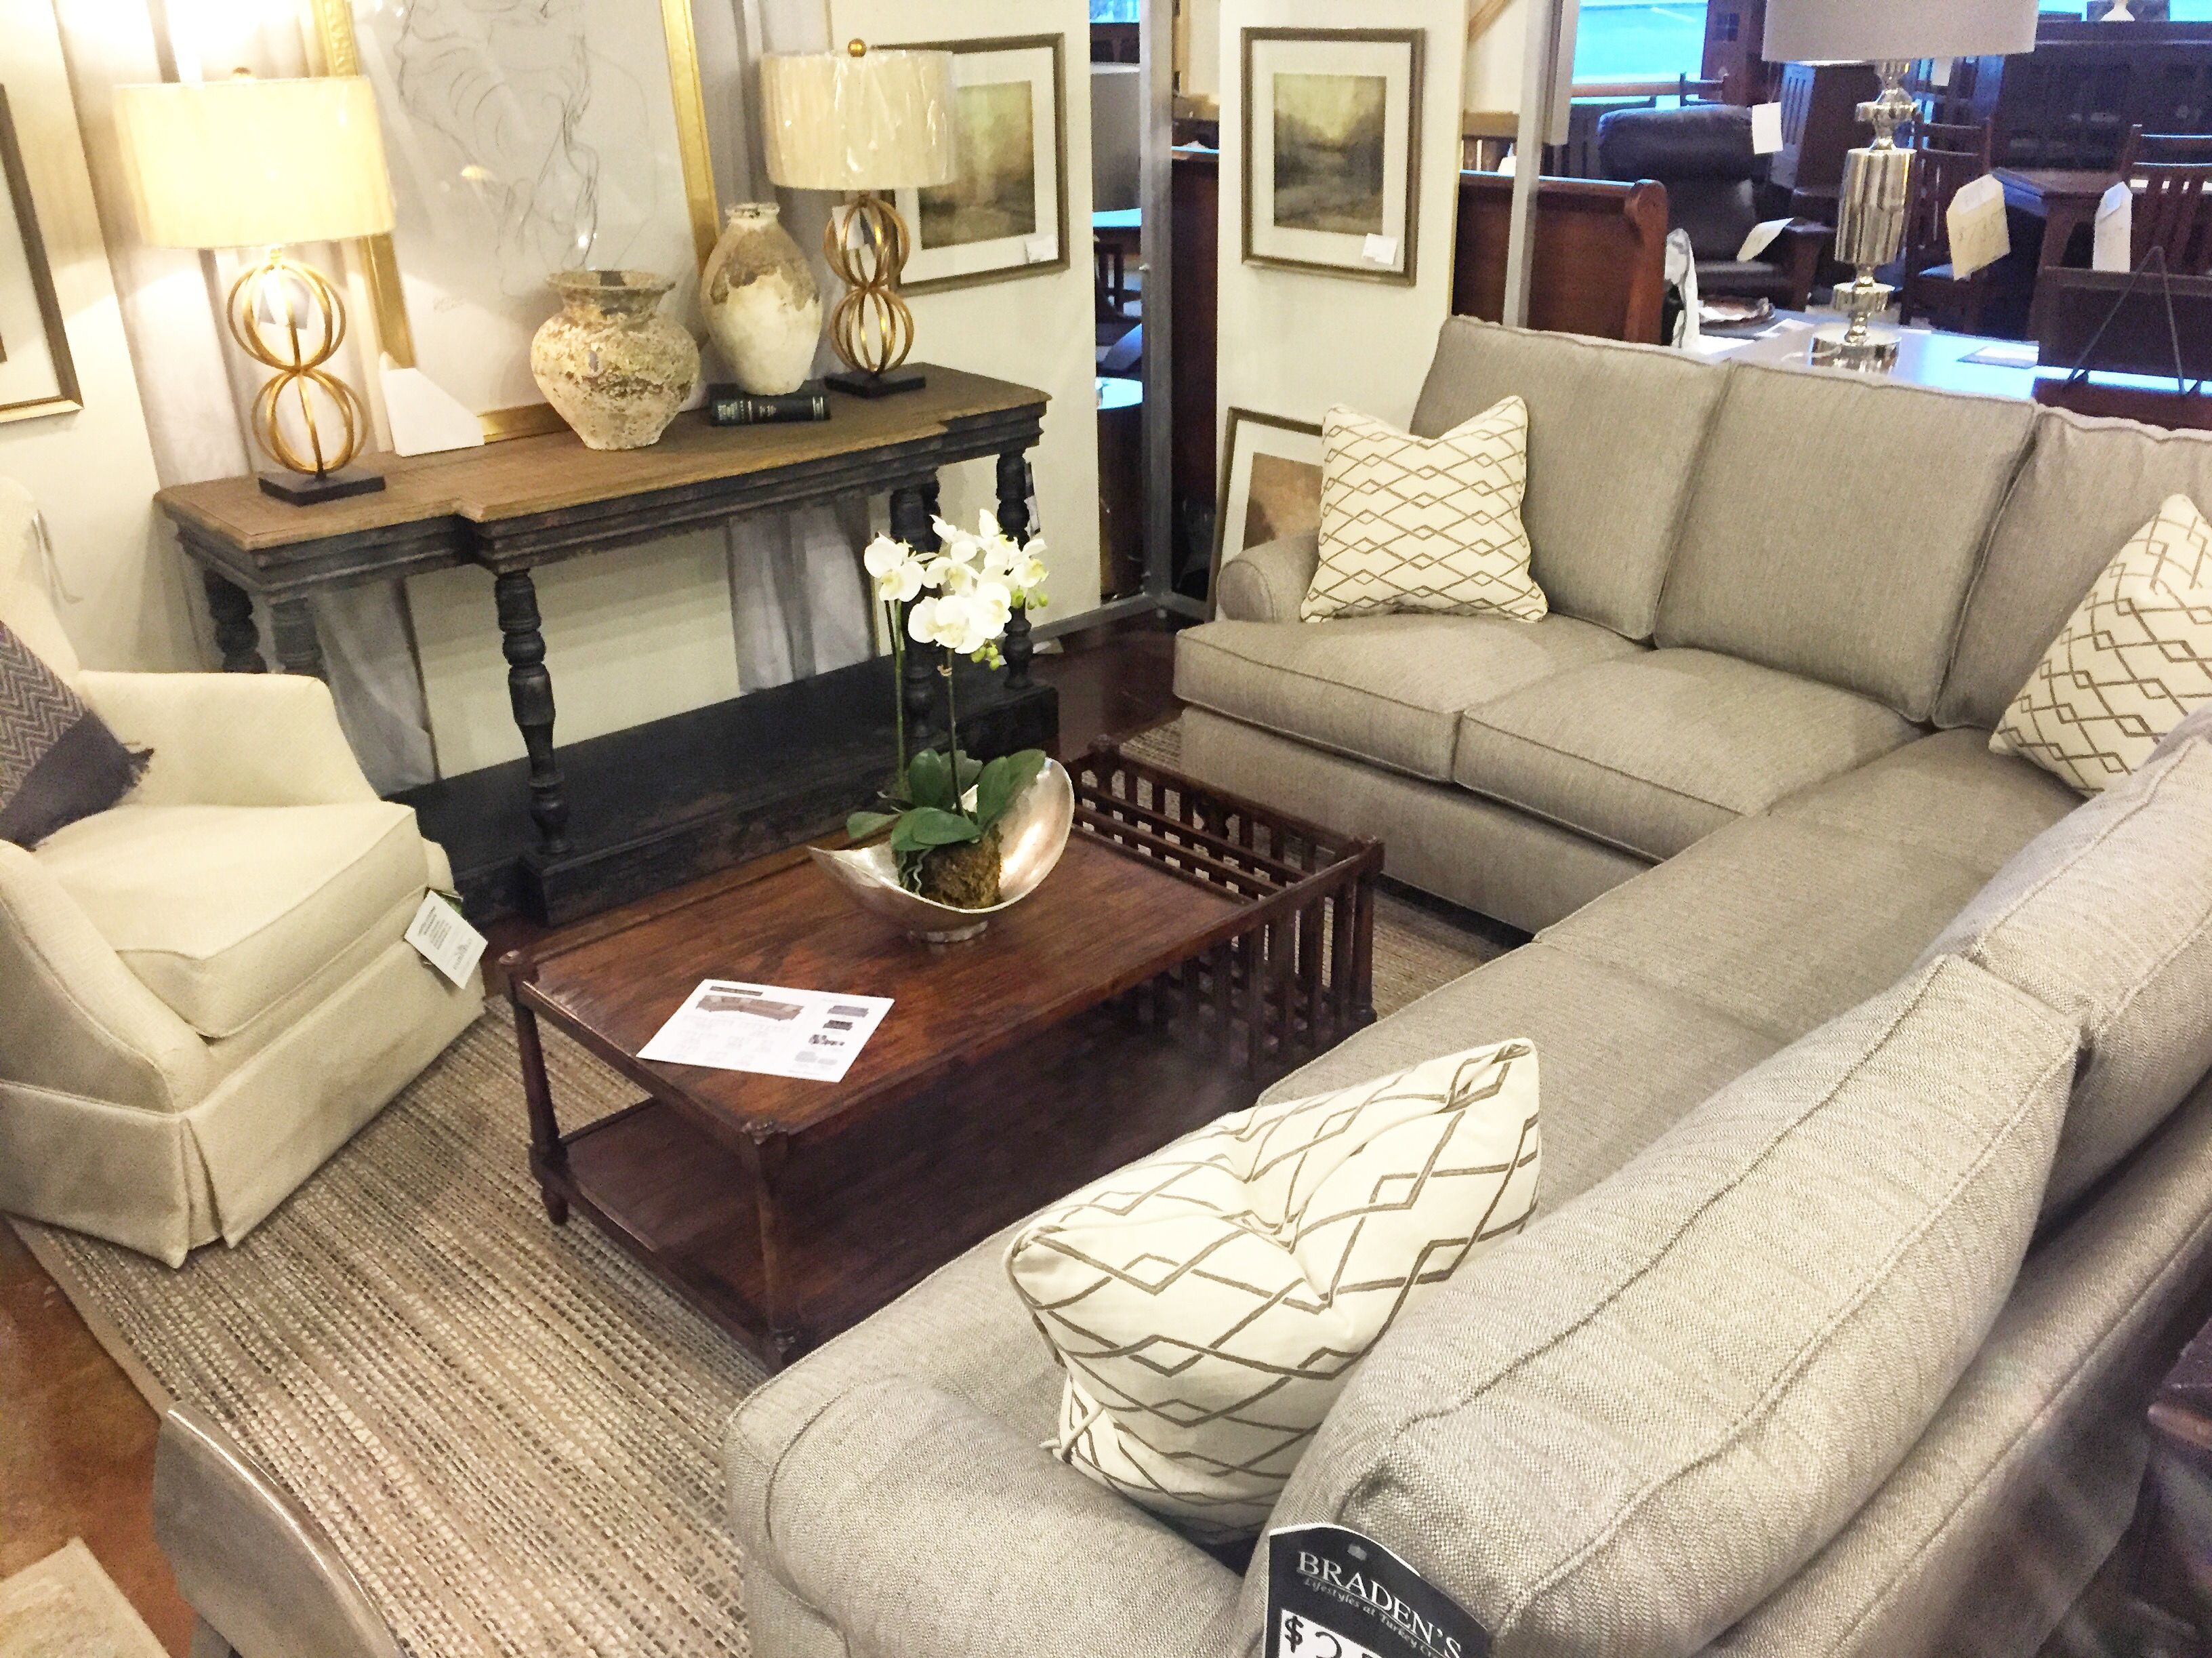 Merveilleux Furniture In Knoxville, TN   Bradenu0027s LIfestyles Furniture   Home Décor    Home Interiors   Interior Design   The Design Center At Bradenu0027s    Sectional Sofa ...